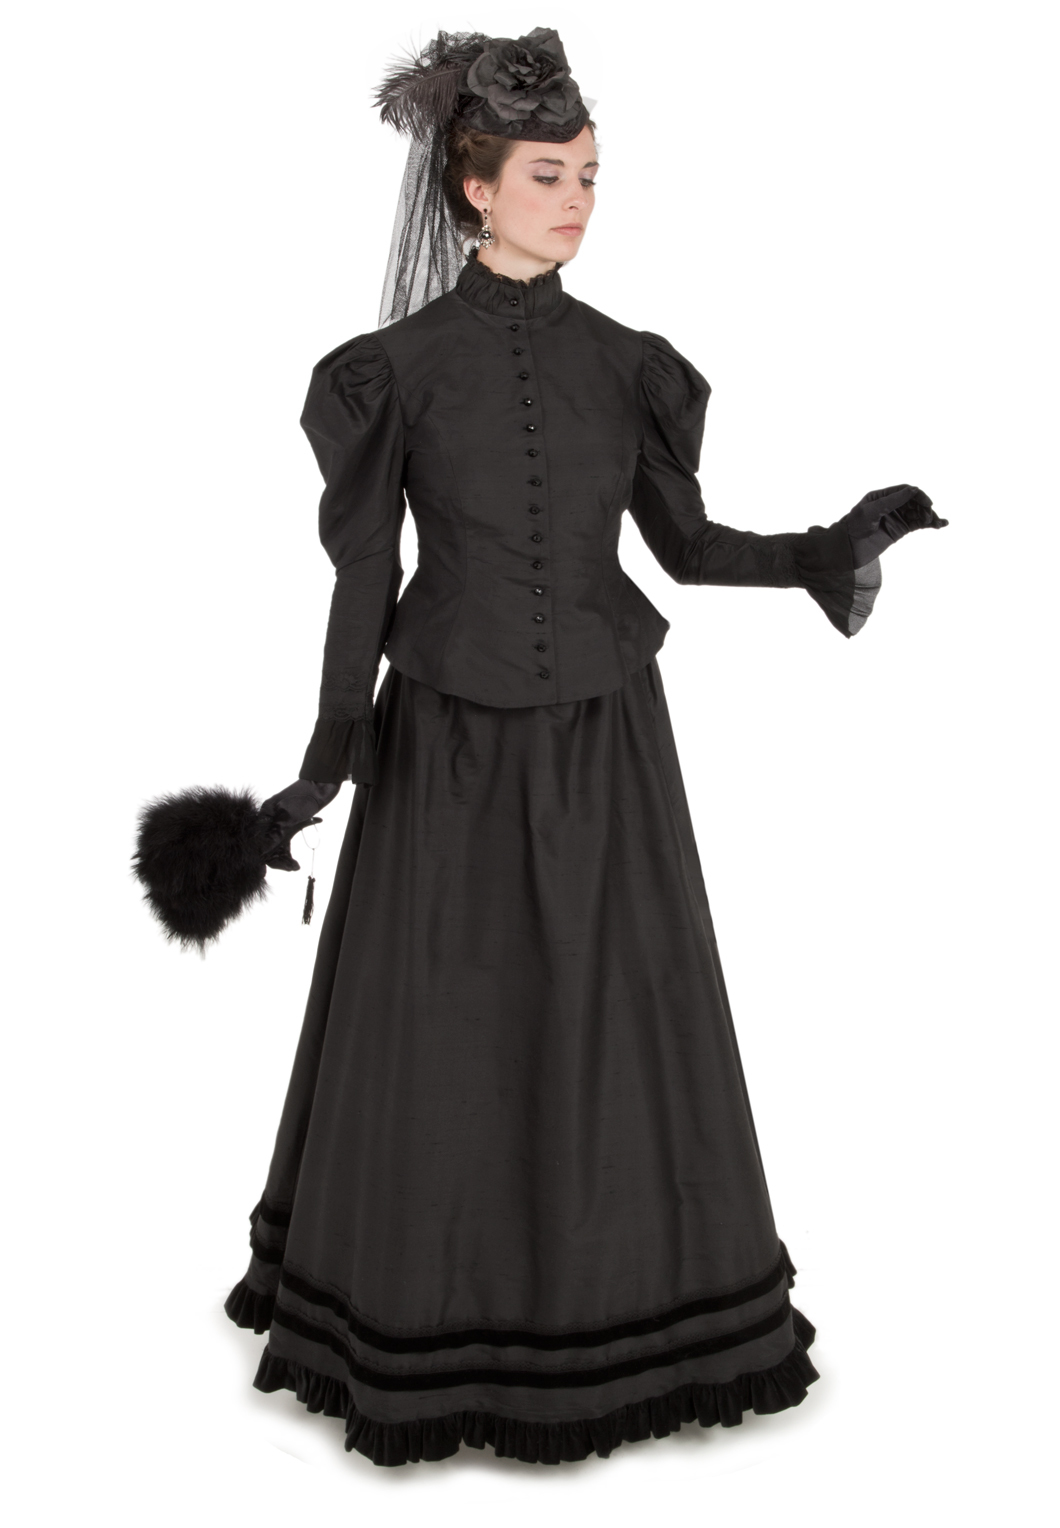 Mourning Dress from Recollections